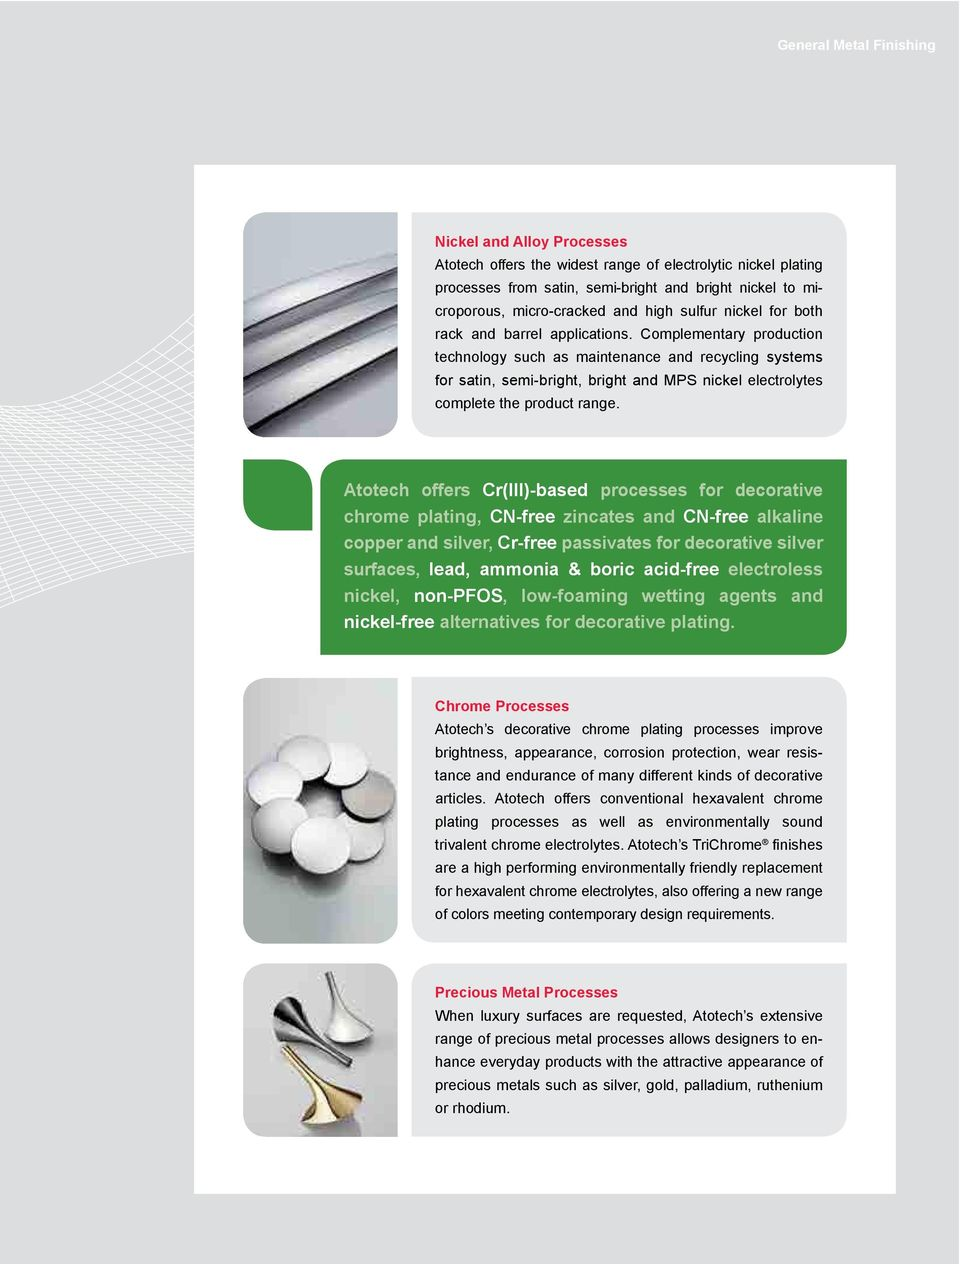 General Metal Finishing Technology Perfectly Matched Concepts for